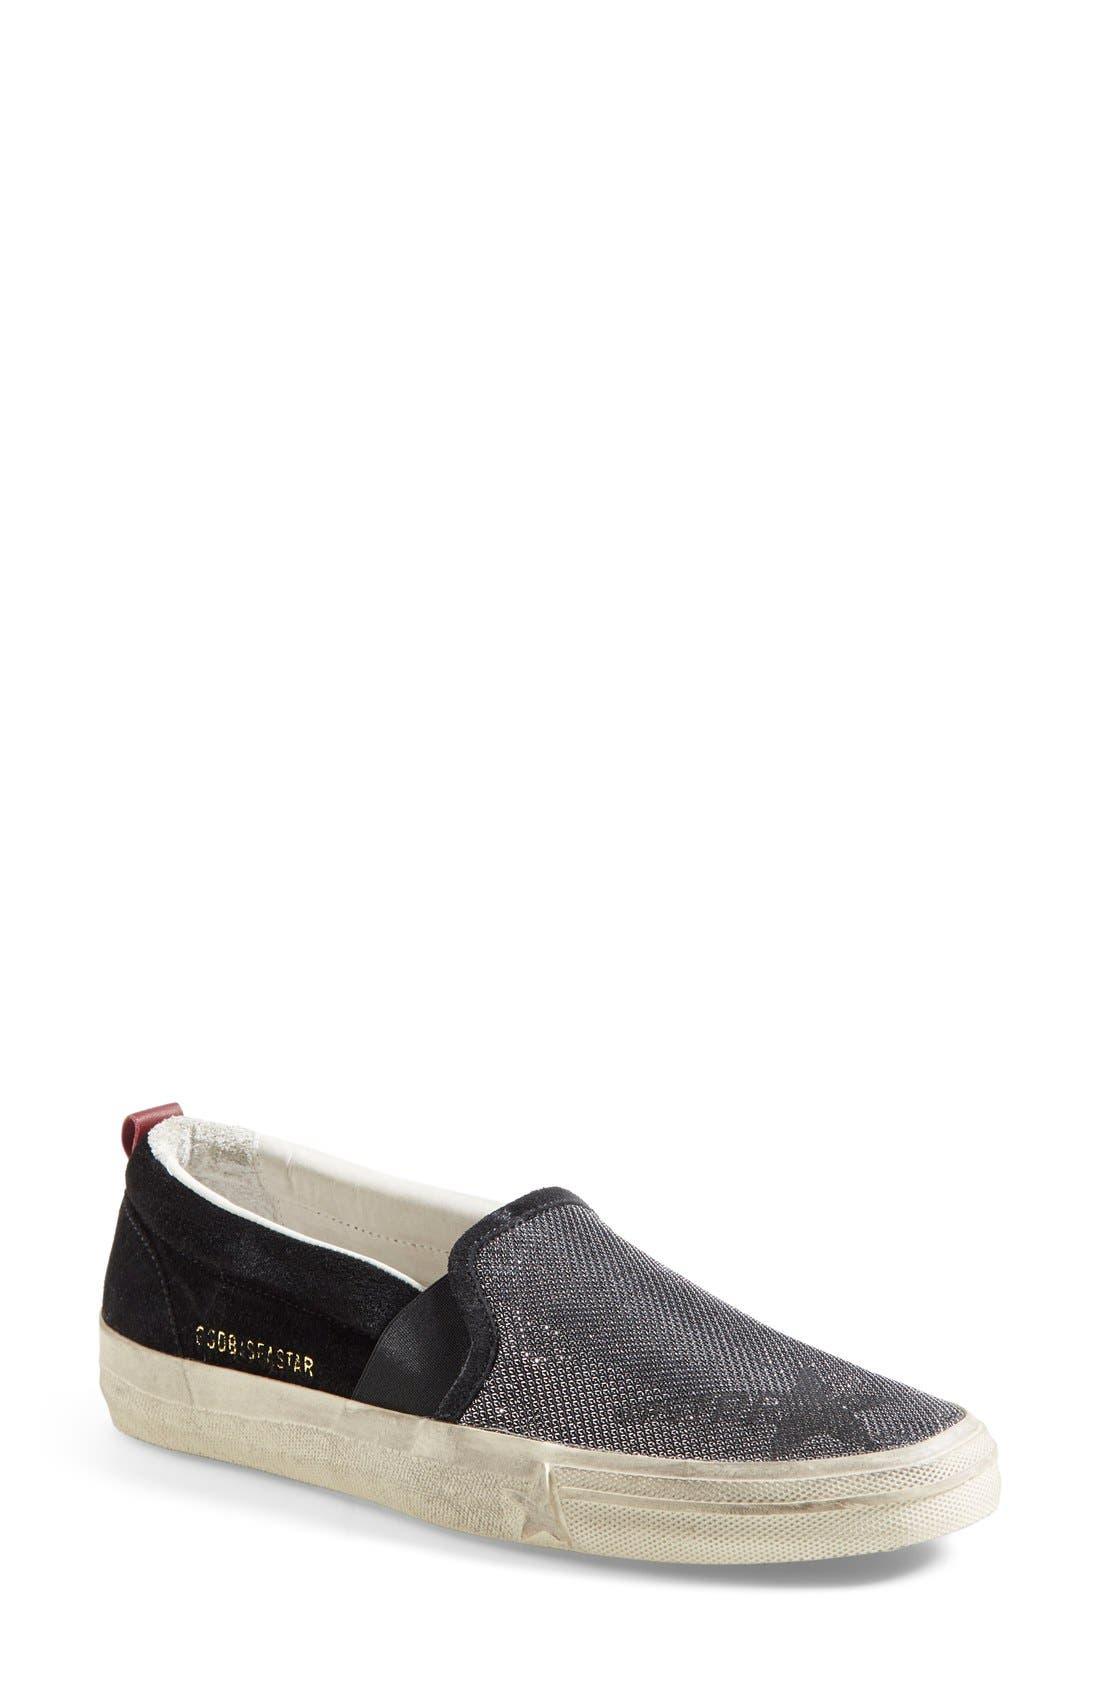 Alternate Image 1 Selected - Golden Goose 'Sea Star' Slip-On Sneaker (Women)